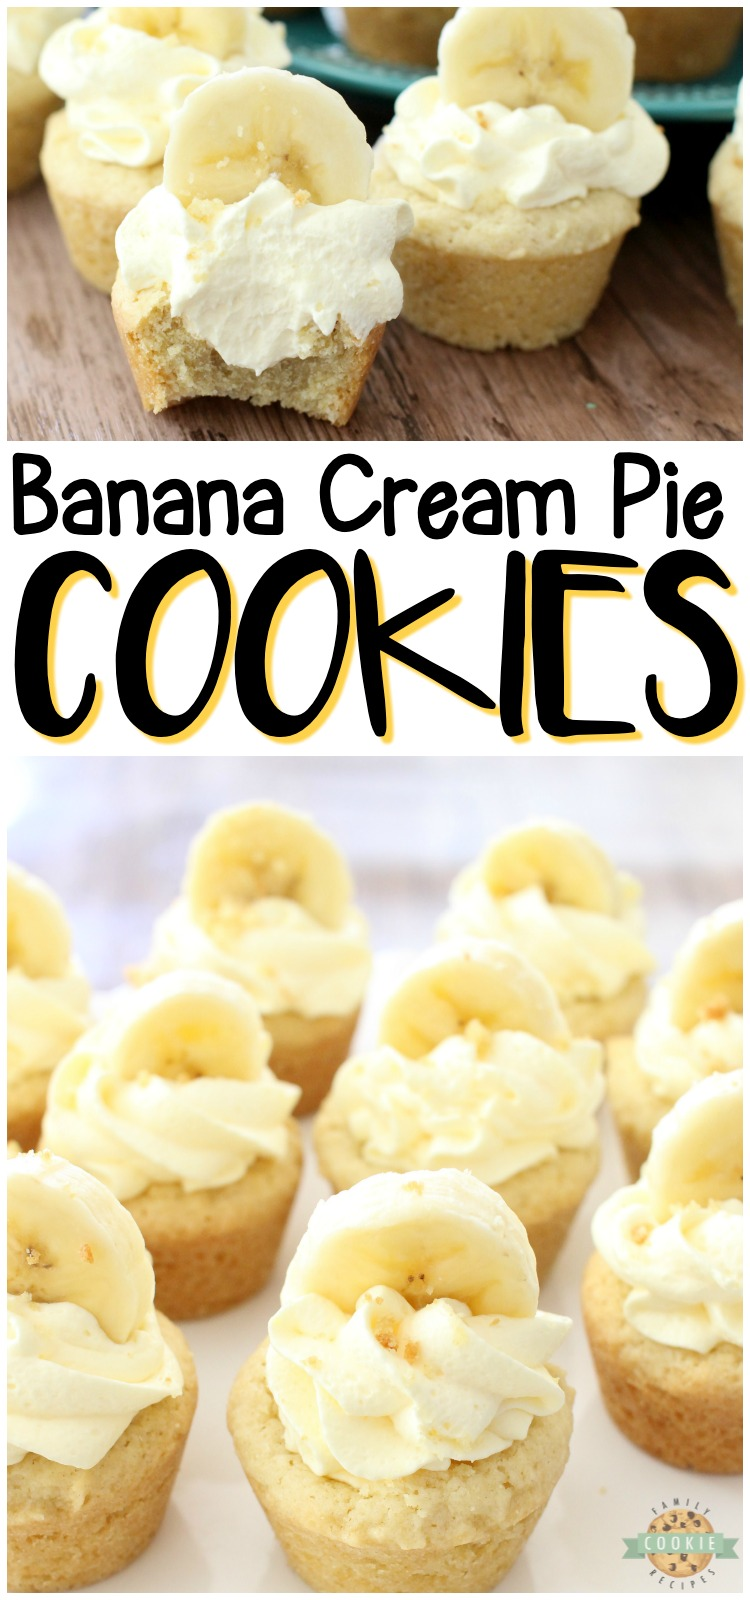 Banana Cream Pie Cookies are everything you love about Banana Cream Pie, in bite-sized cookie form! Easy family favorite banana cookie recipe! #cookies #banana #pie #bananacream #dessert #homemade #baking from FAMILY COOKIE RECIPES